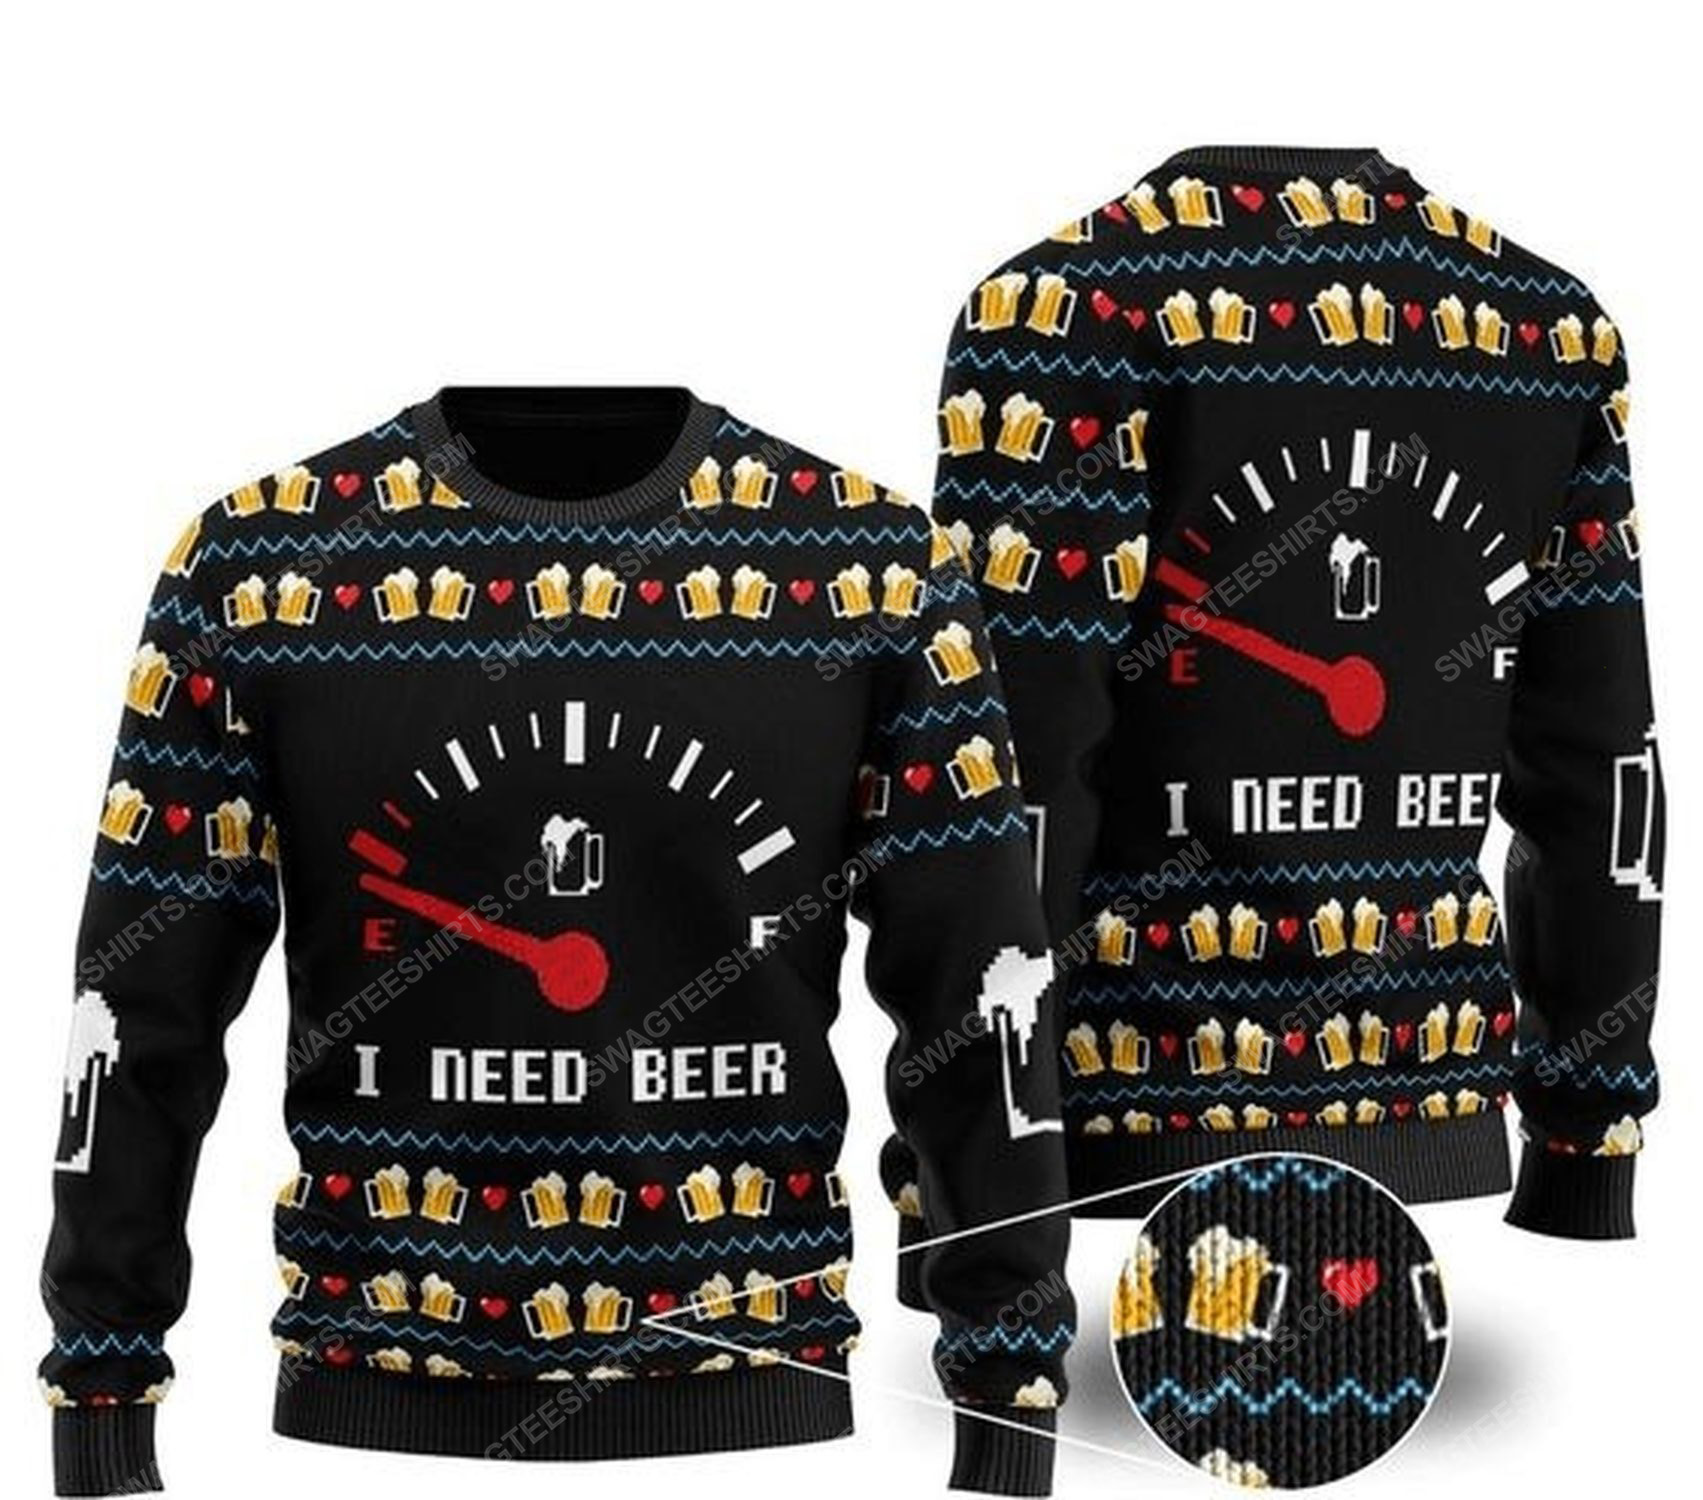 I need beer all over print ugly christmas sweater 1 - Copy